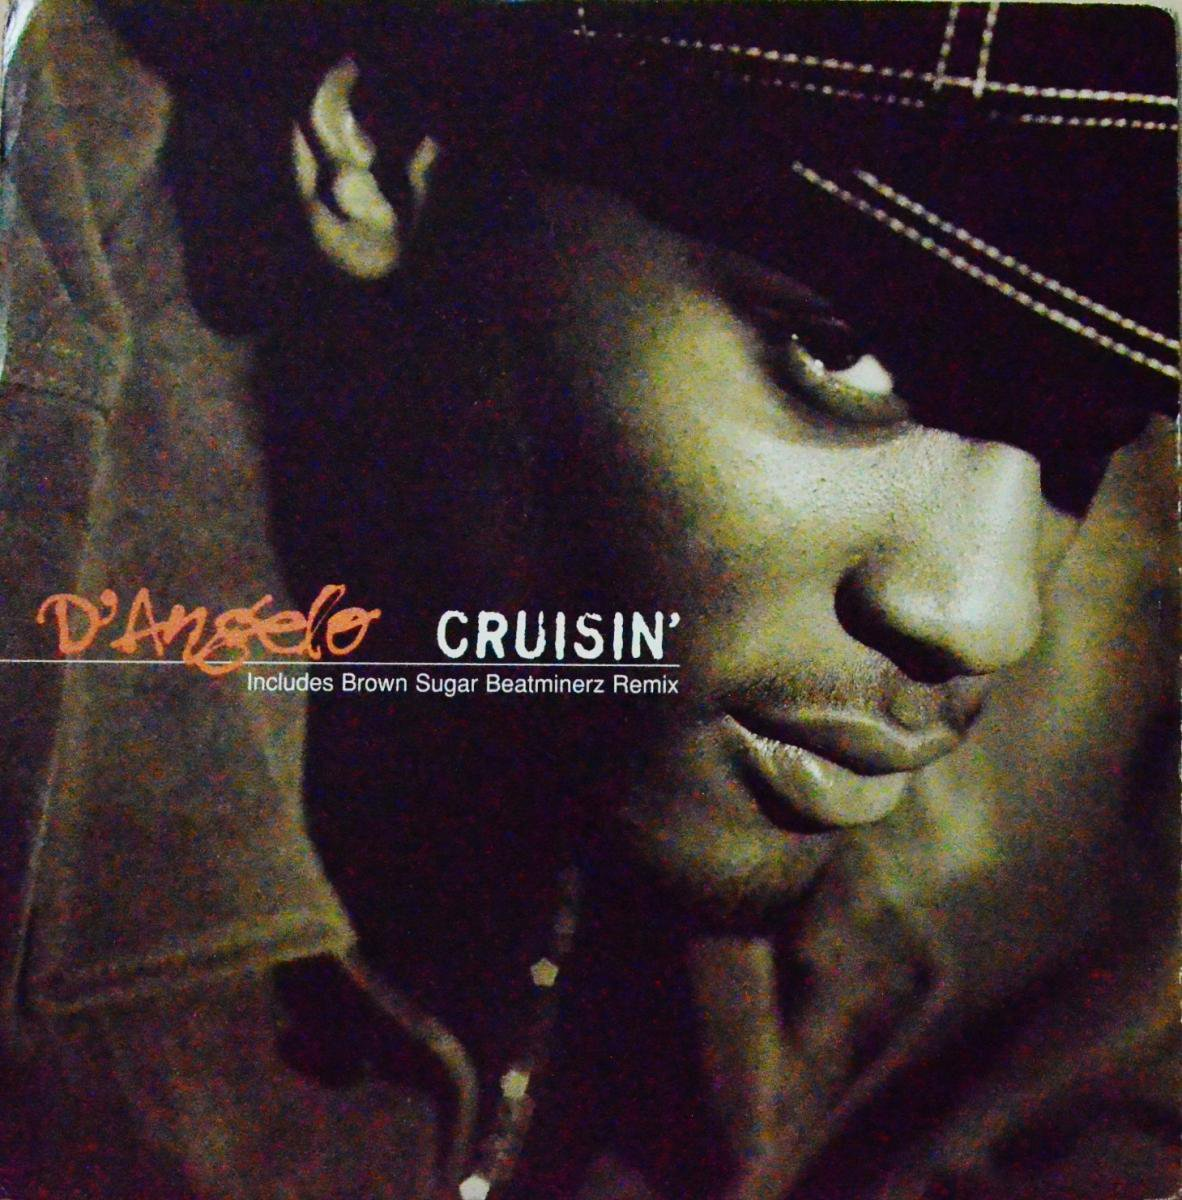 D'ANGELO / CRUISIN' / BROWN SUGAR-BEATMINERZ REMIX-UK (12